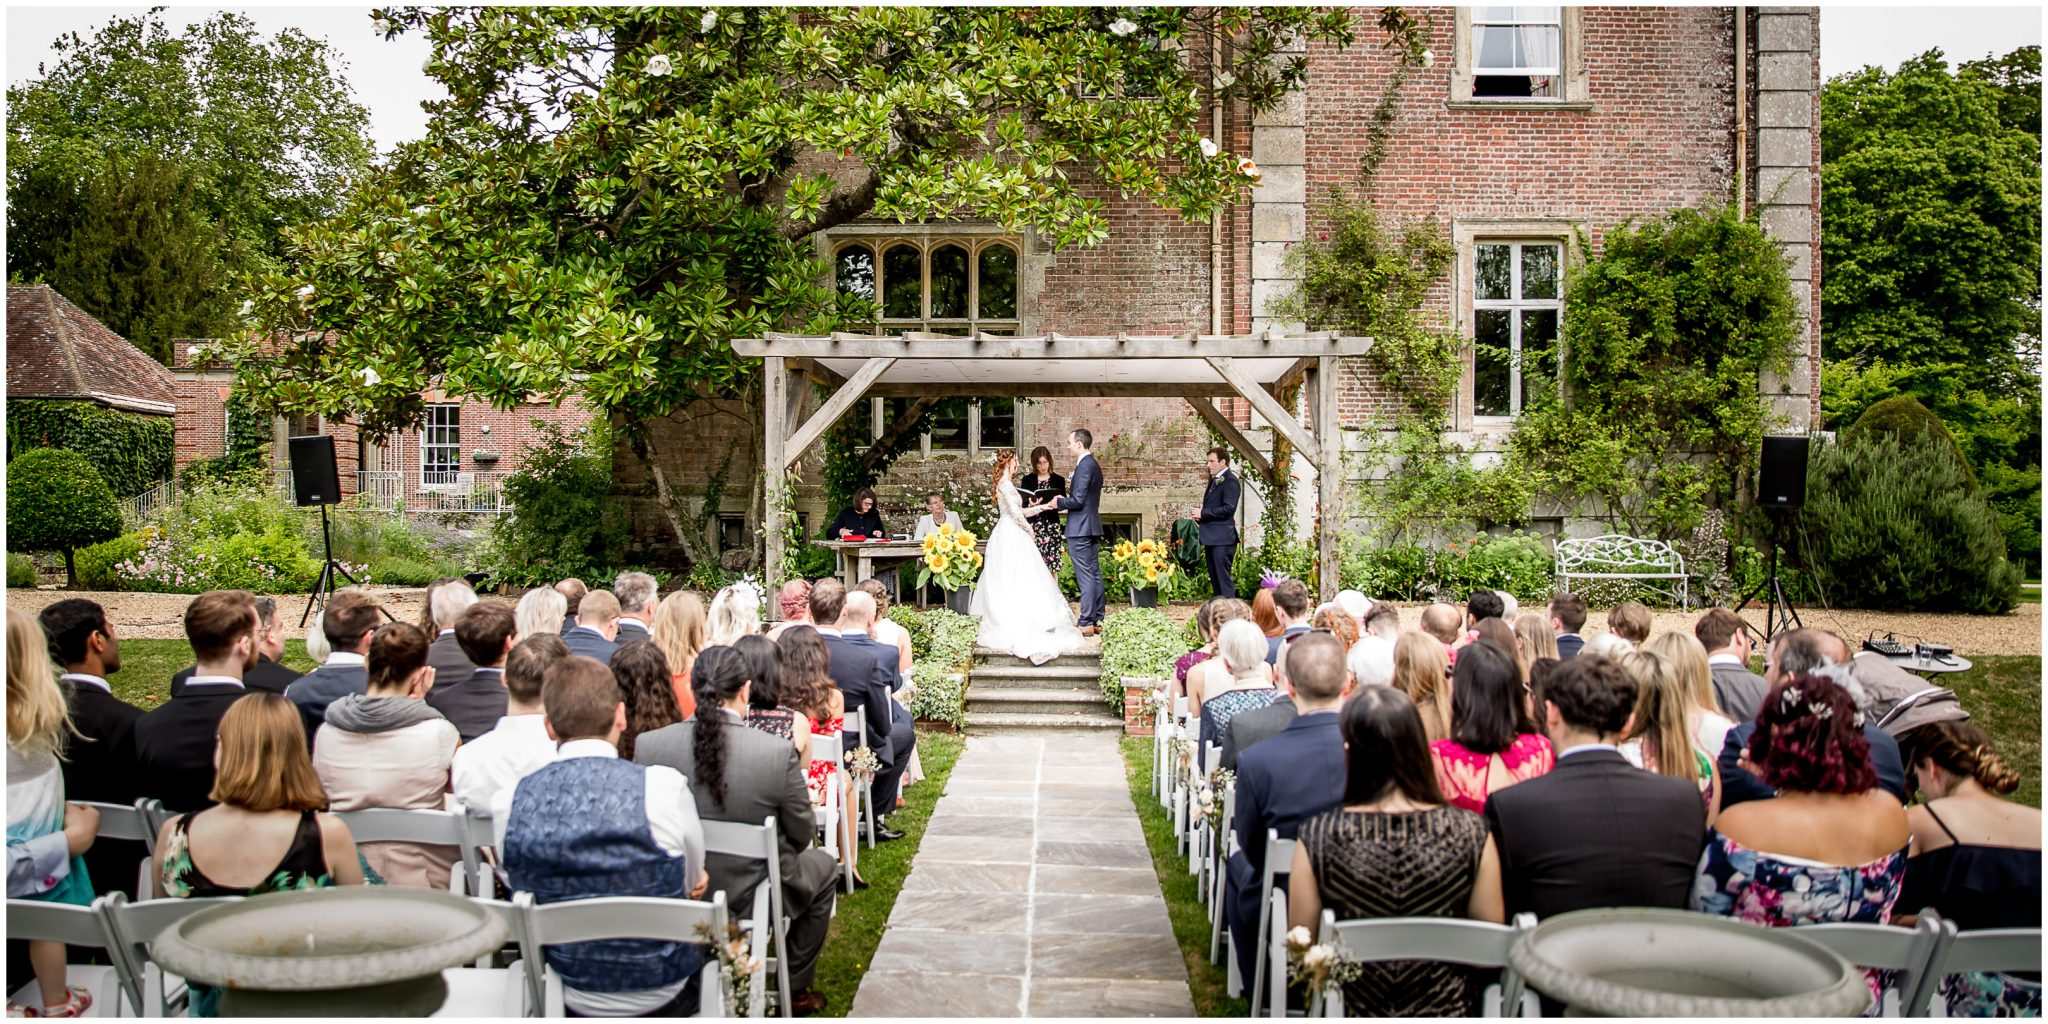 The outdoor ceremony area to the rear of the house